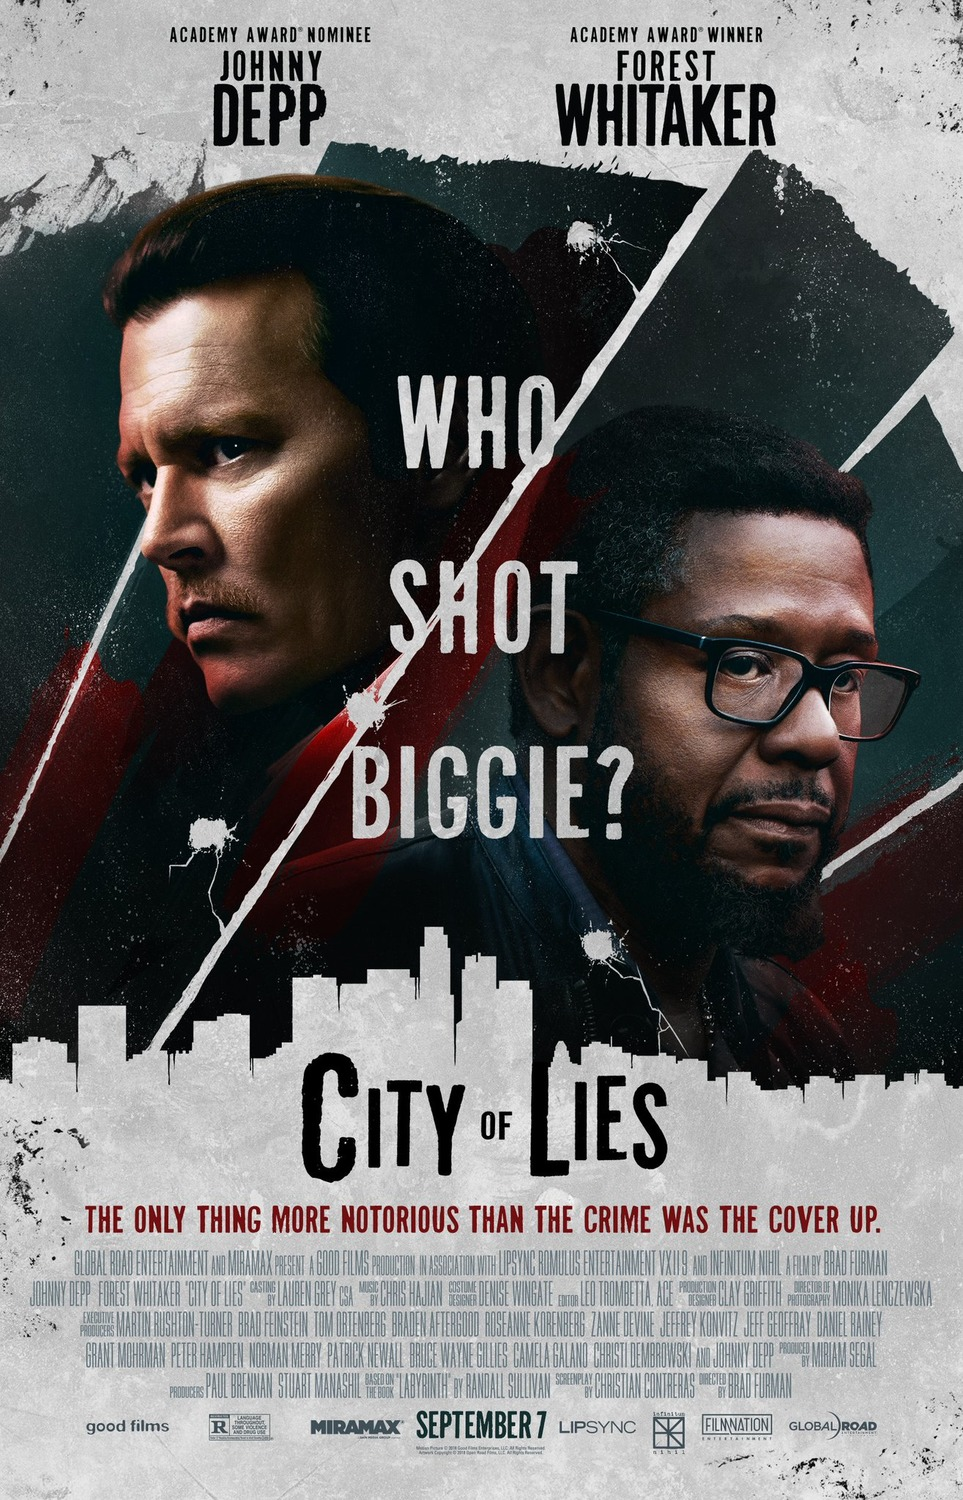 city of lies poster - City of Lies con Johnny Depp ha perdido su fecha de estreno